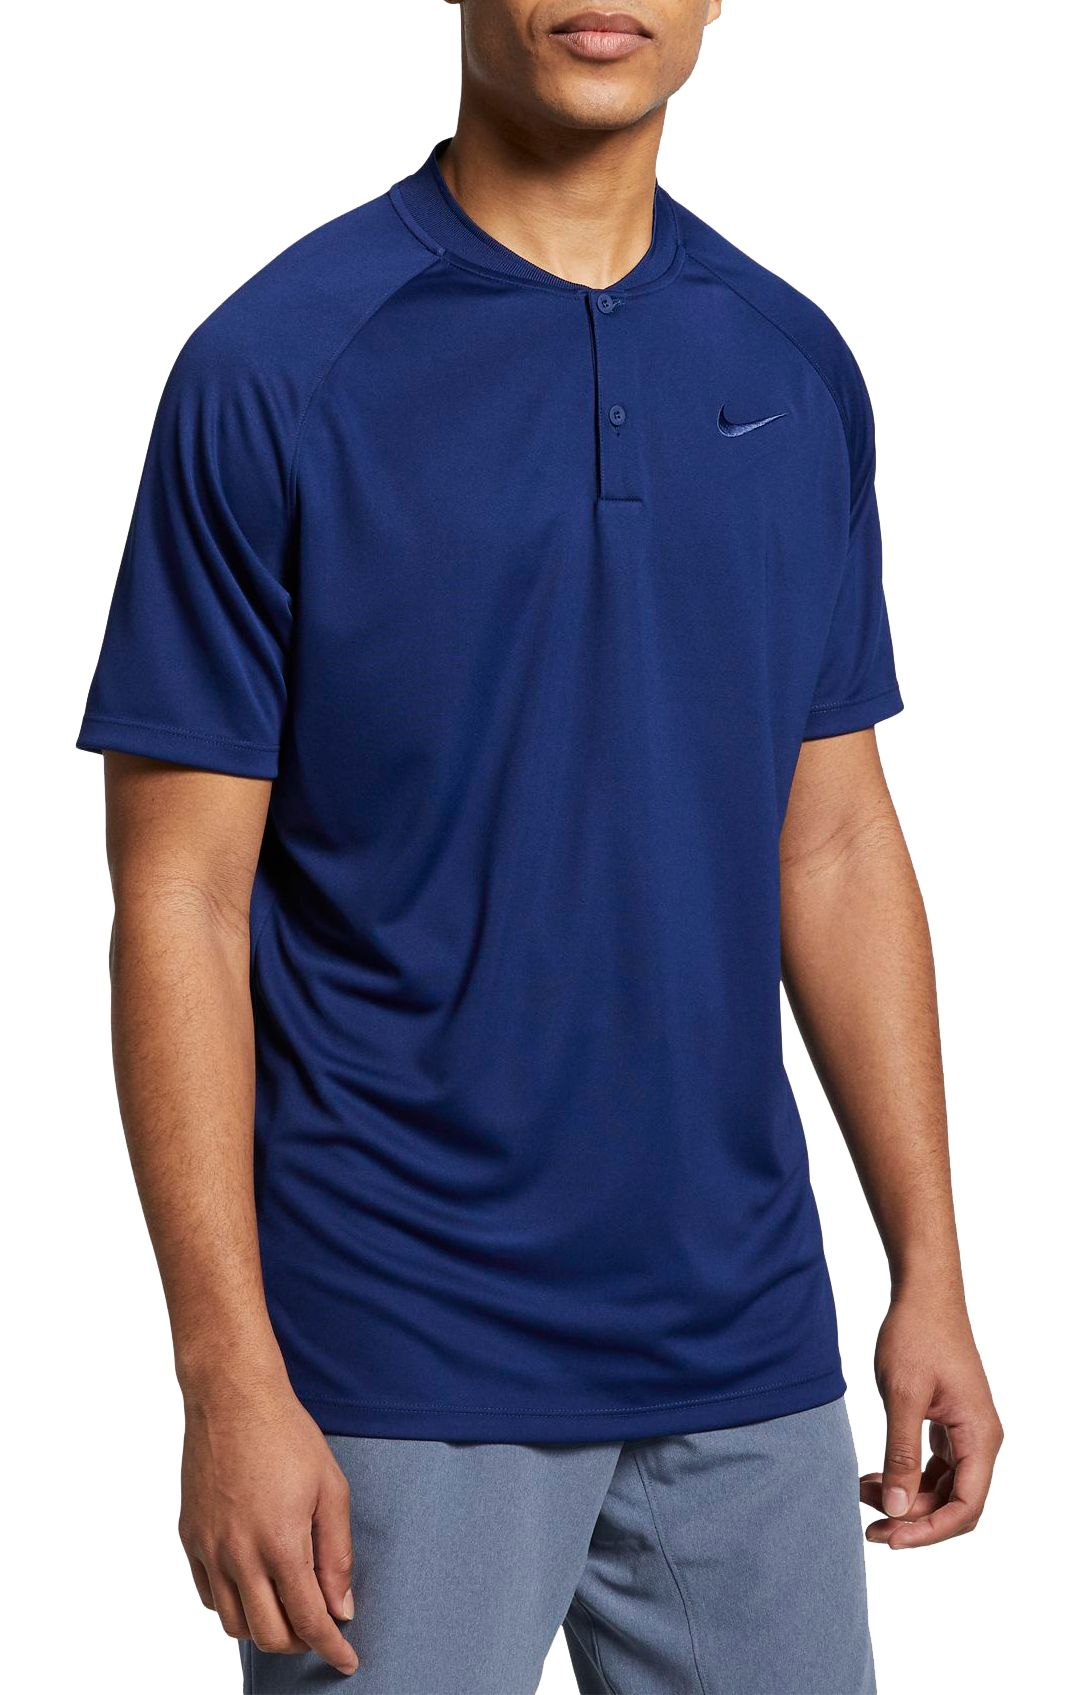 e8ee61c4bf4ce Nike Men's Dry Momentum Blade Collar Golf Polo | DICK'S Sporting Goods